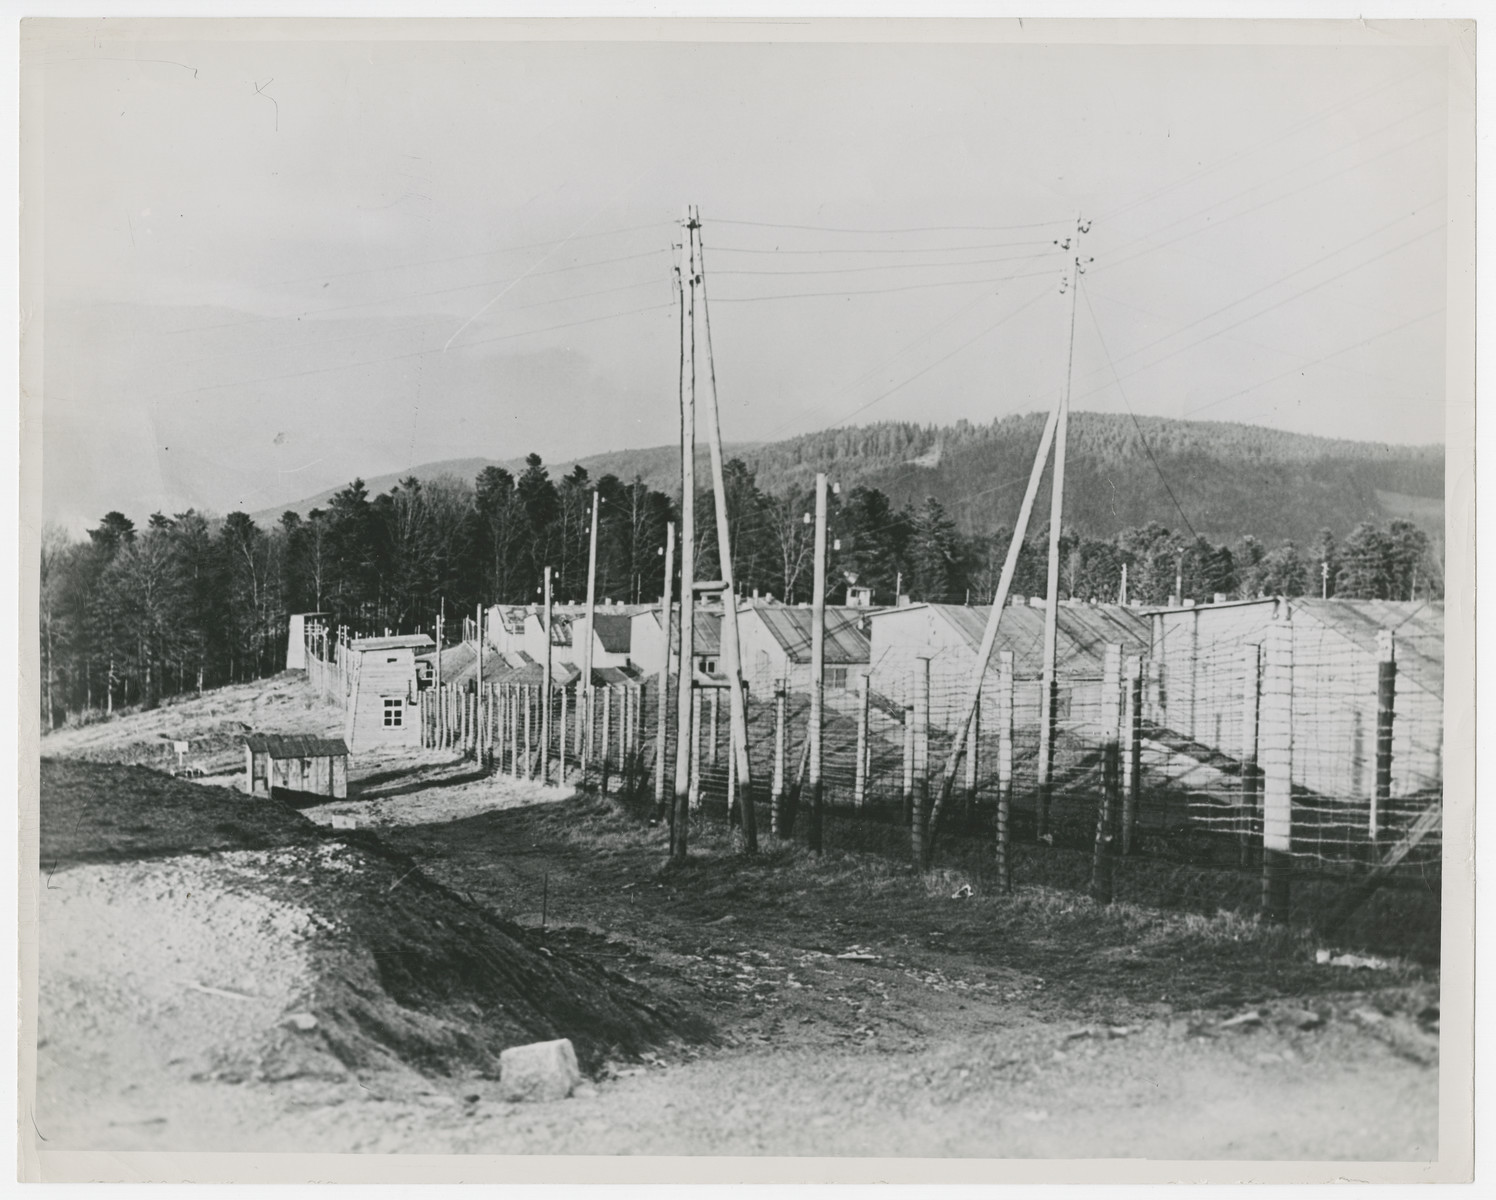 """A view of the Struthof concentration camp in Echirmeck, France.  Original caption reads:  """"This is a view of the Struthof concentration camp in the Echirmeck area of France.  Barbed wire fencing encloses the crude buildings where 8,000 French patriots are reported to have been gassed by the Germas and then cremated in huge ovens""""."""